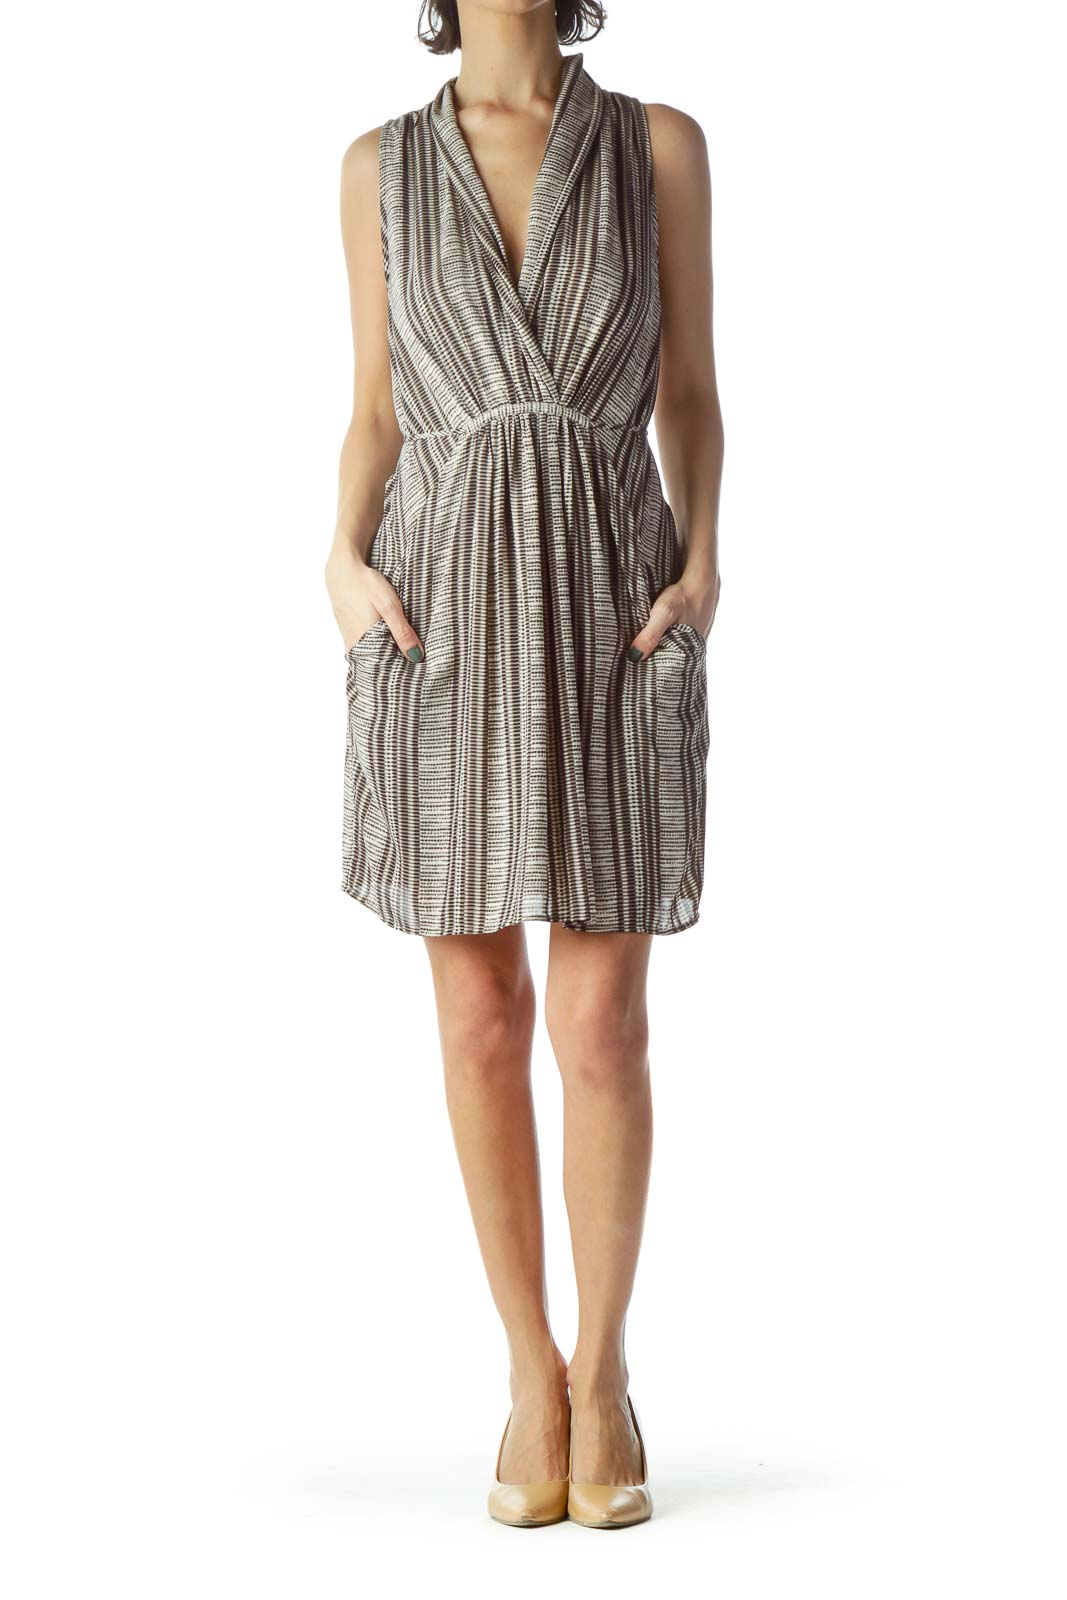 Brown Black Beige Print V-Neck Dress